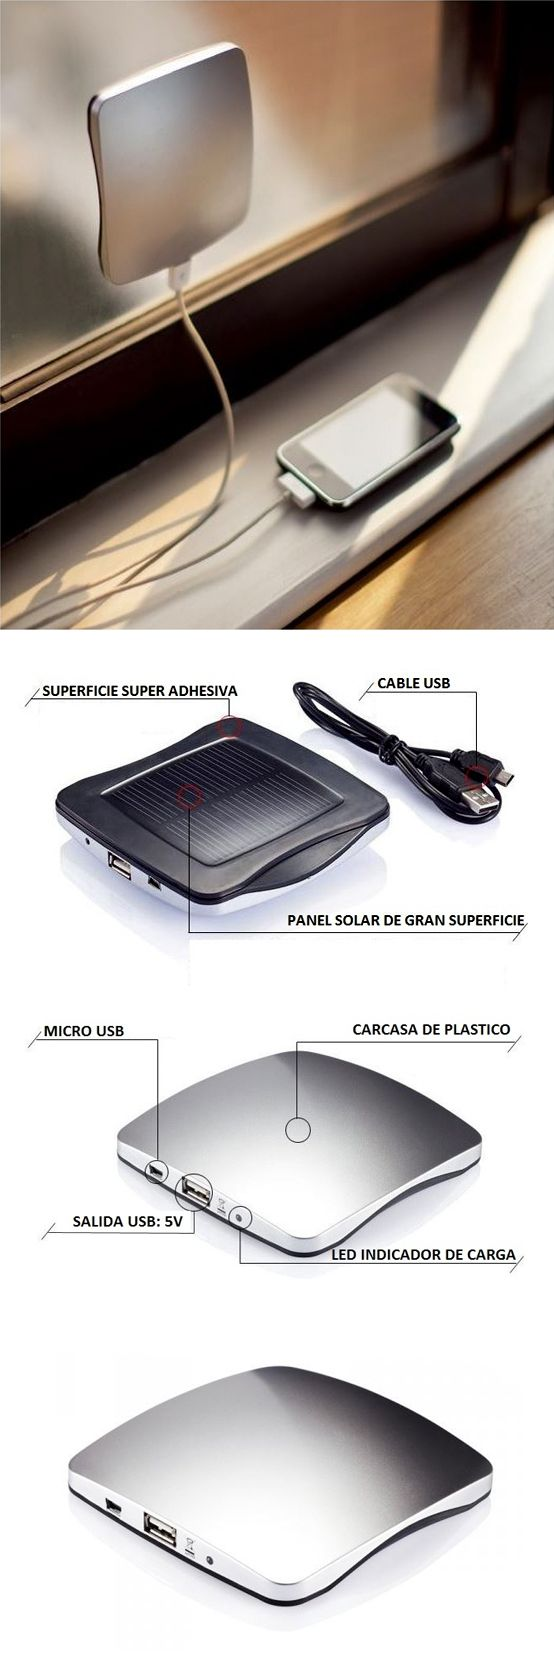 Cargador de energía #solar para tu teléfono #movil o cualquier otro dispositivo USB. Qué os parece? - Solar charger for your #smartphone or any USB device.  #Regalos #Frikis #Renovable #Geek #Gifts